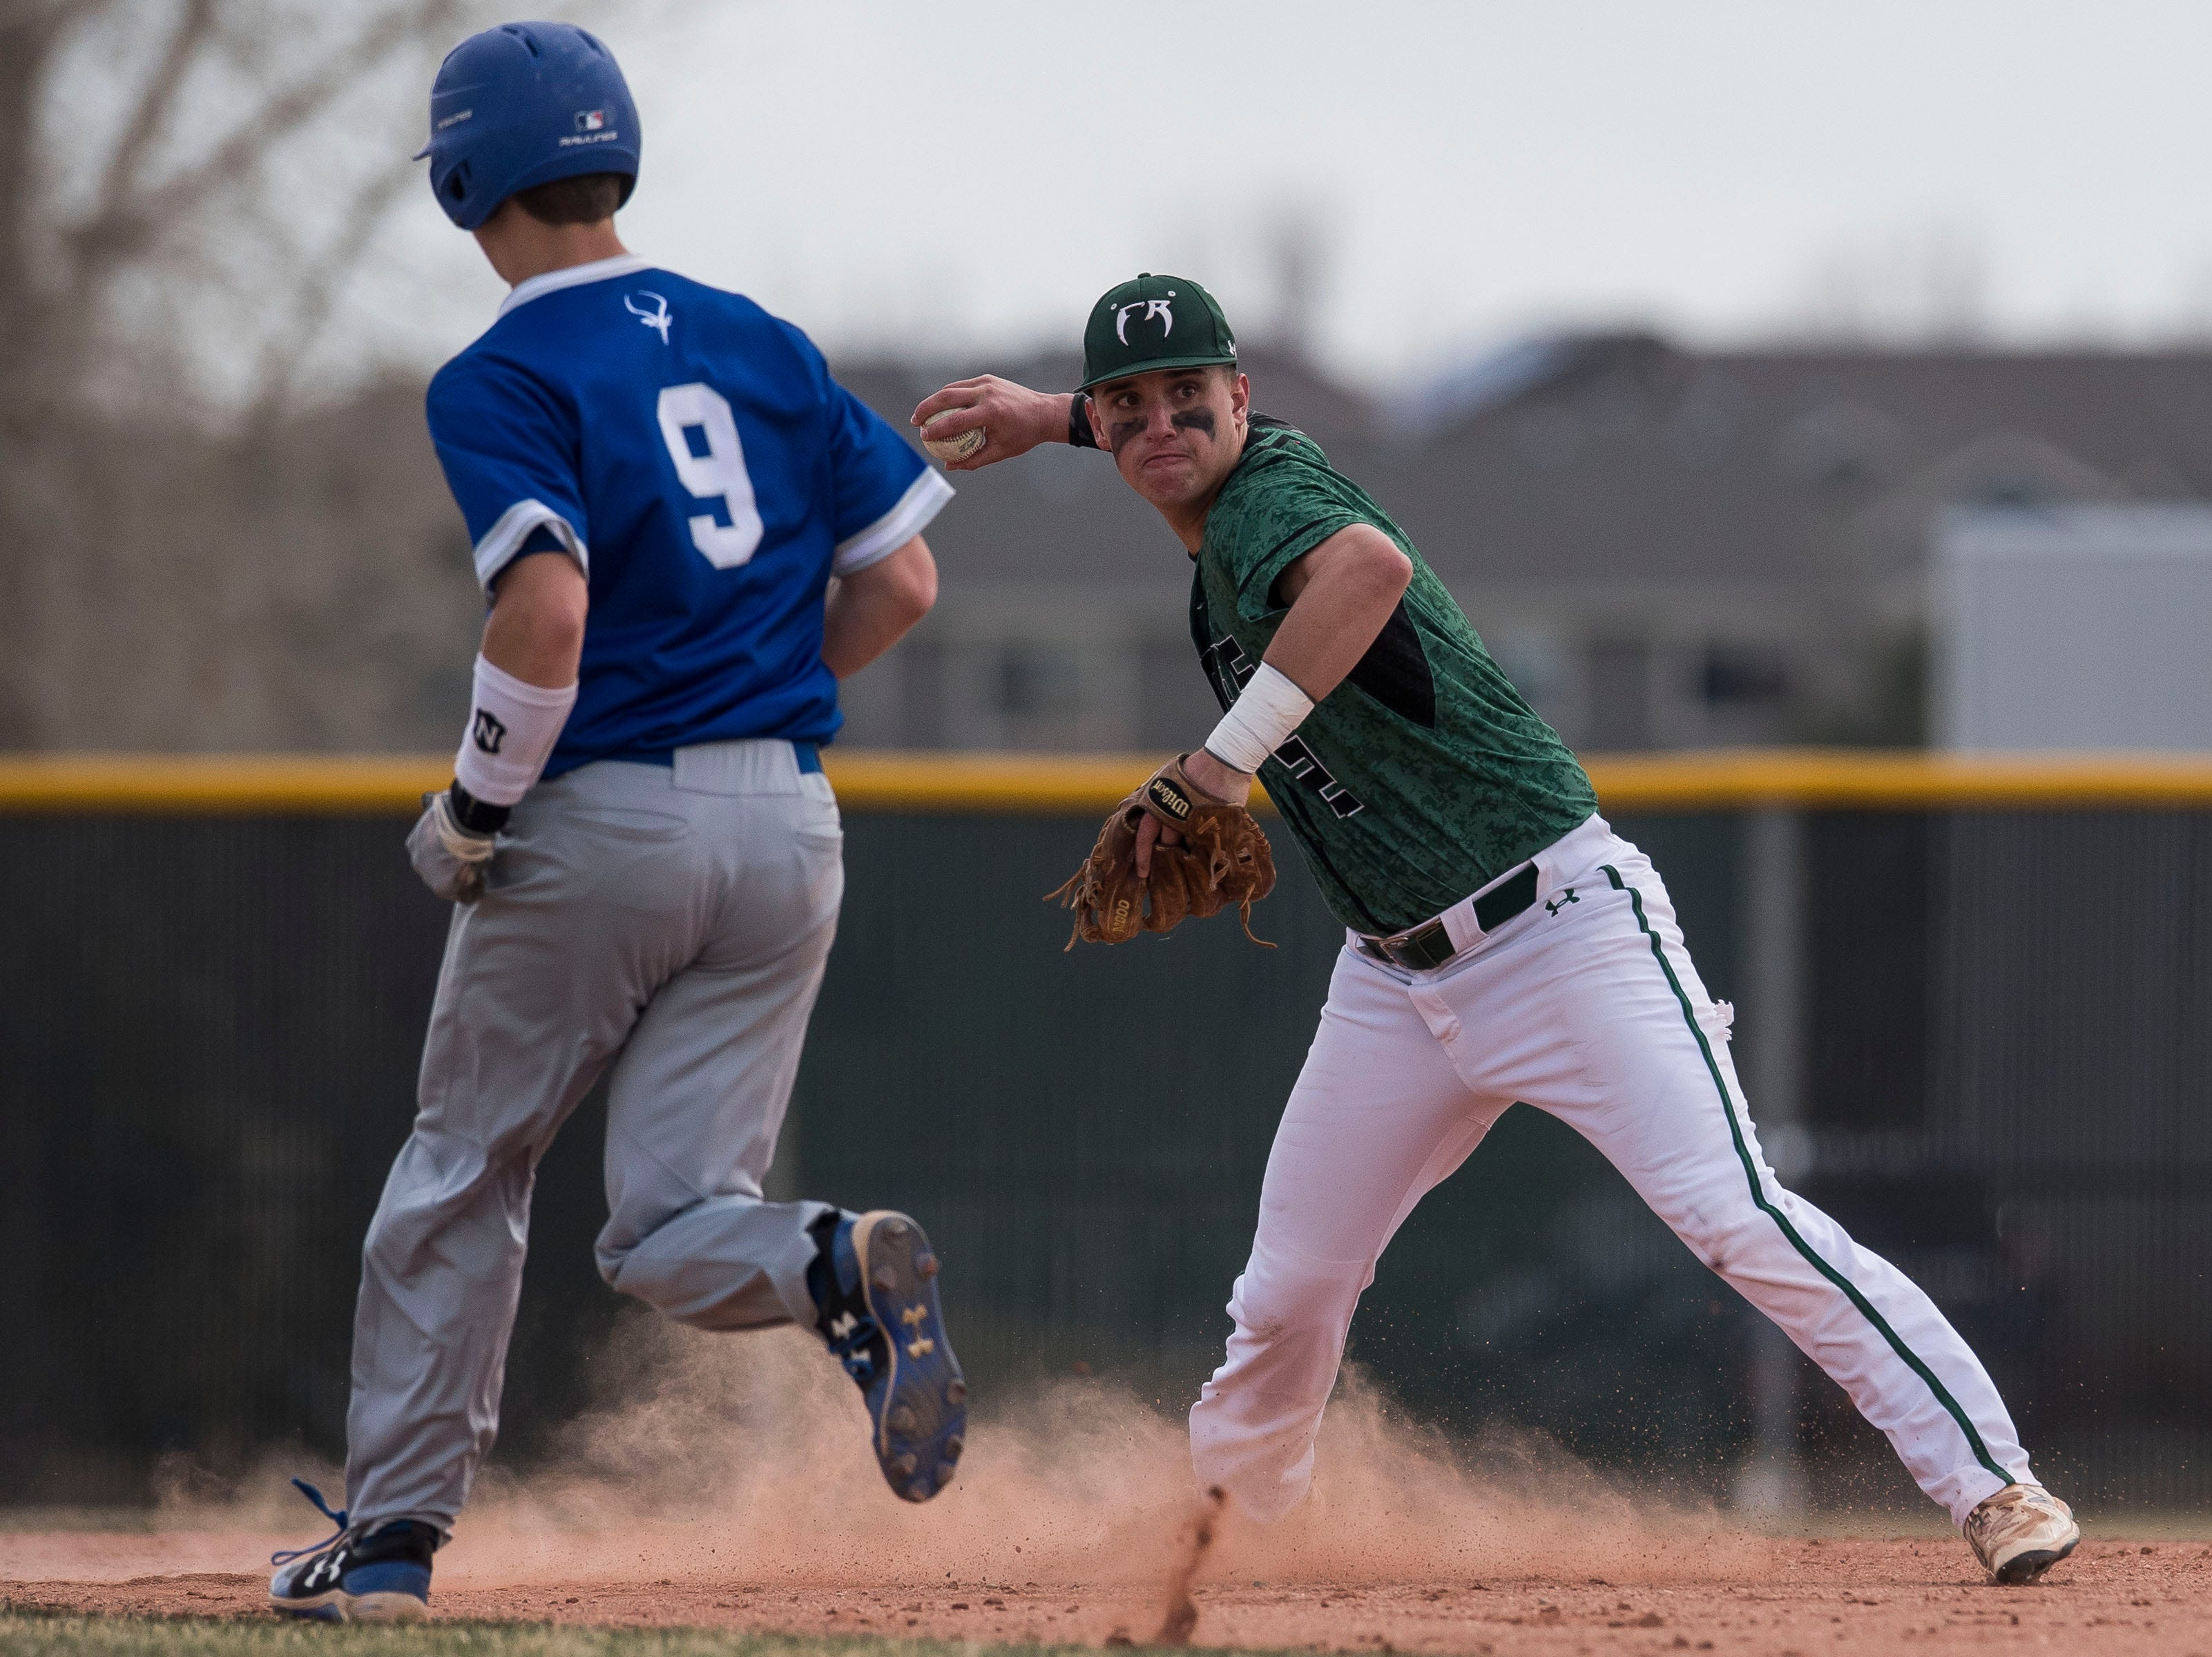 Fossil Ridge High School shortstop Talen Townsend (2) turns two after forcing out Poudre High School runner Zach Pettofrezzo (9) on Wednesday, April 3, 2019, at Fossil Ridge High School in Fort Collins, Colo.